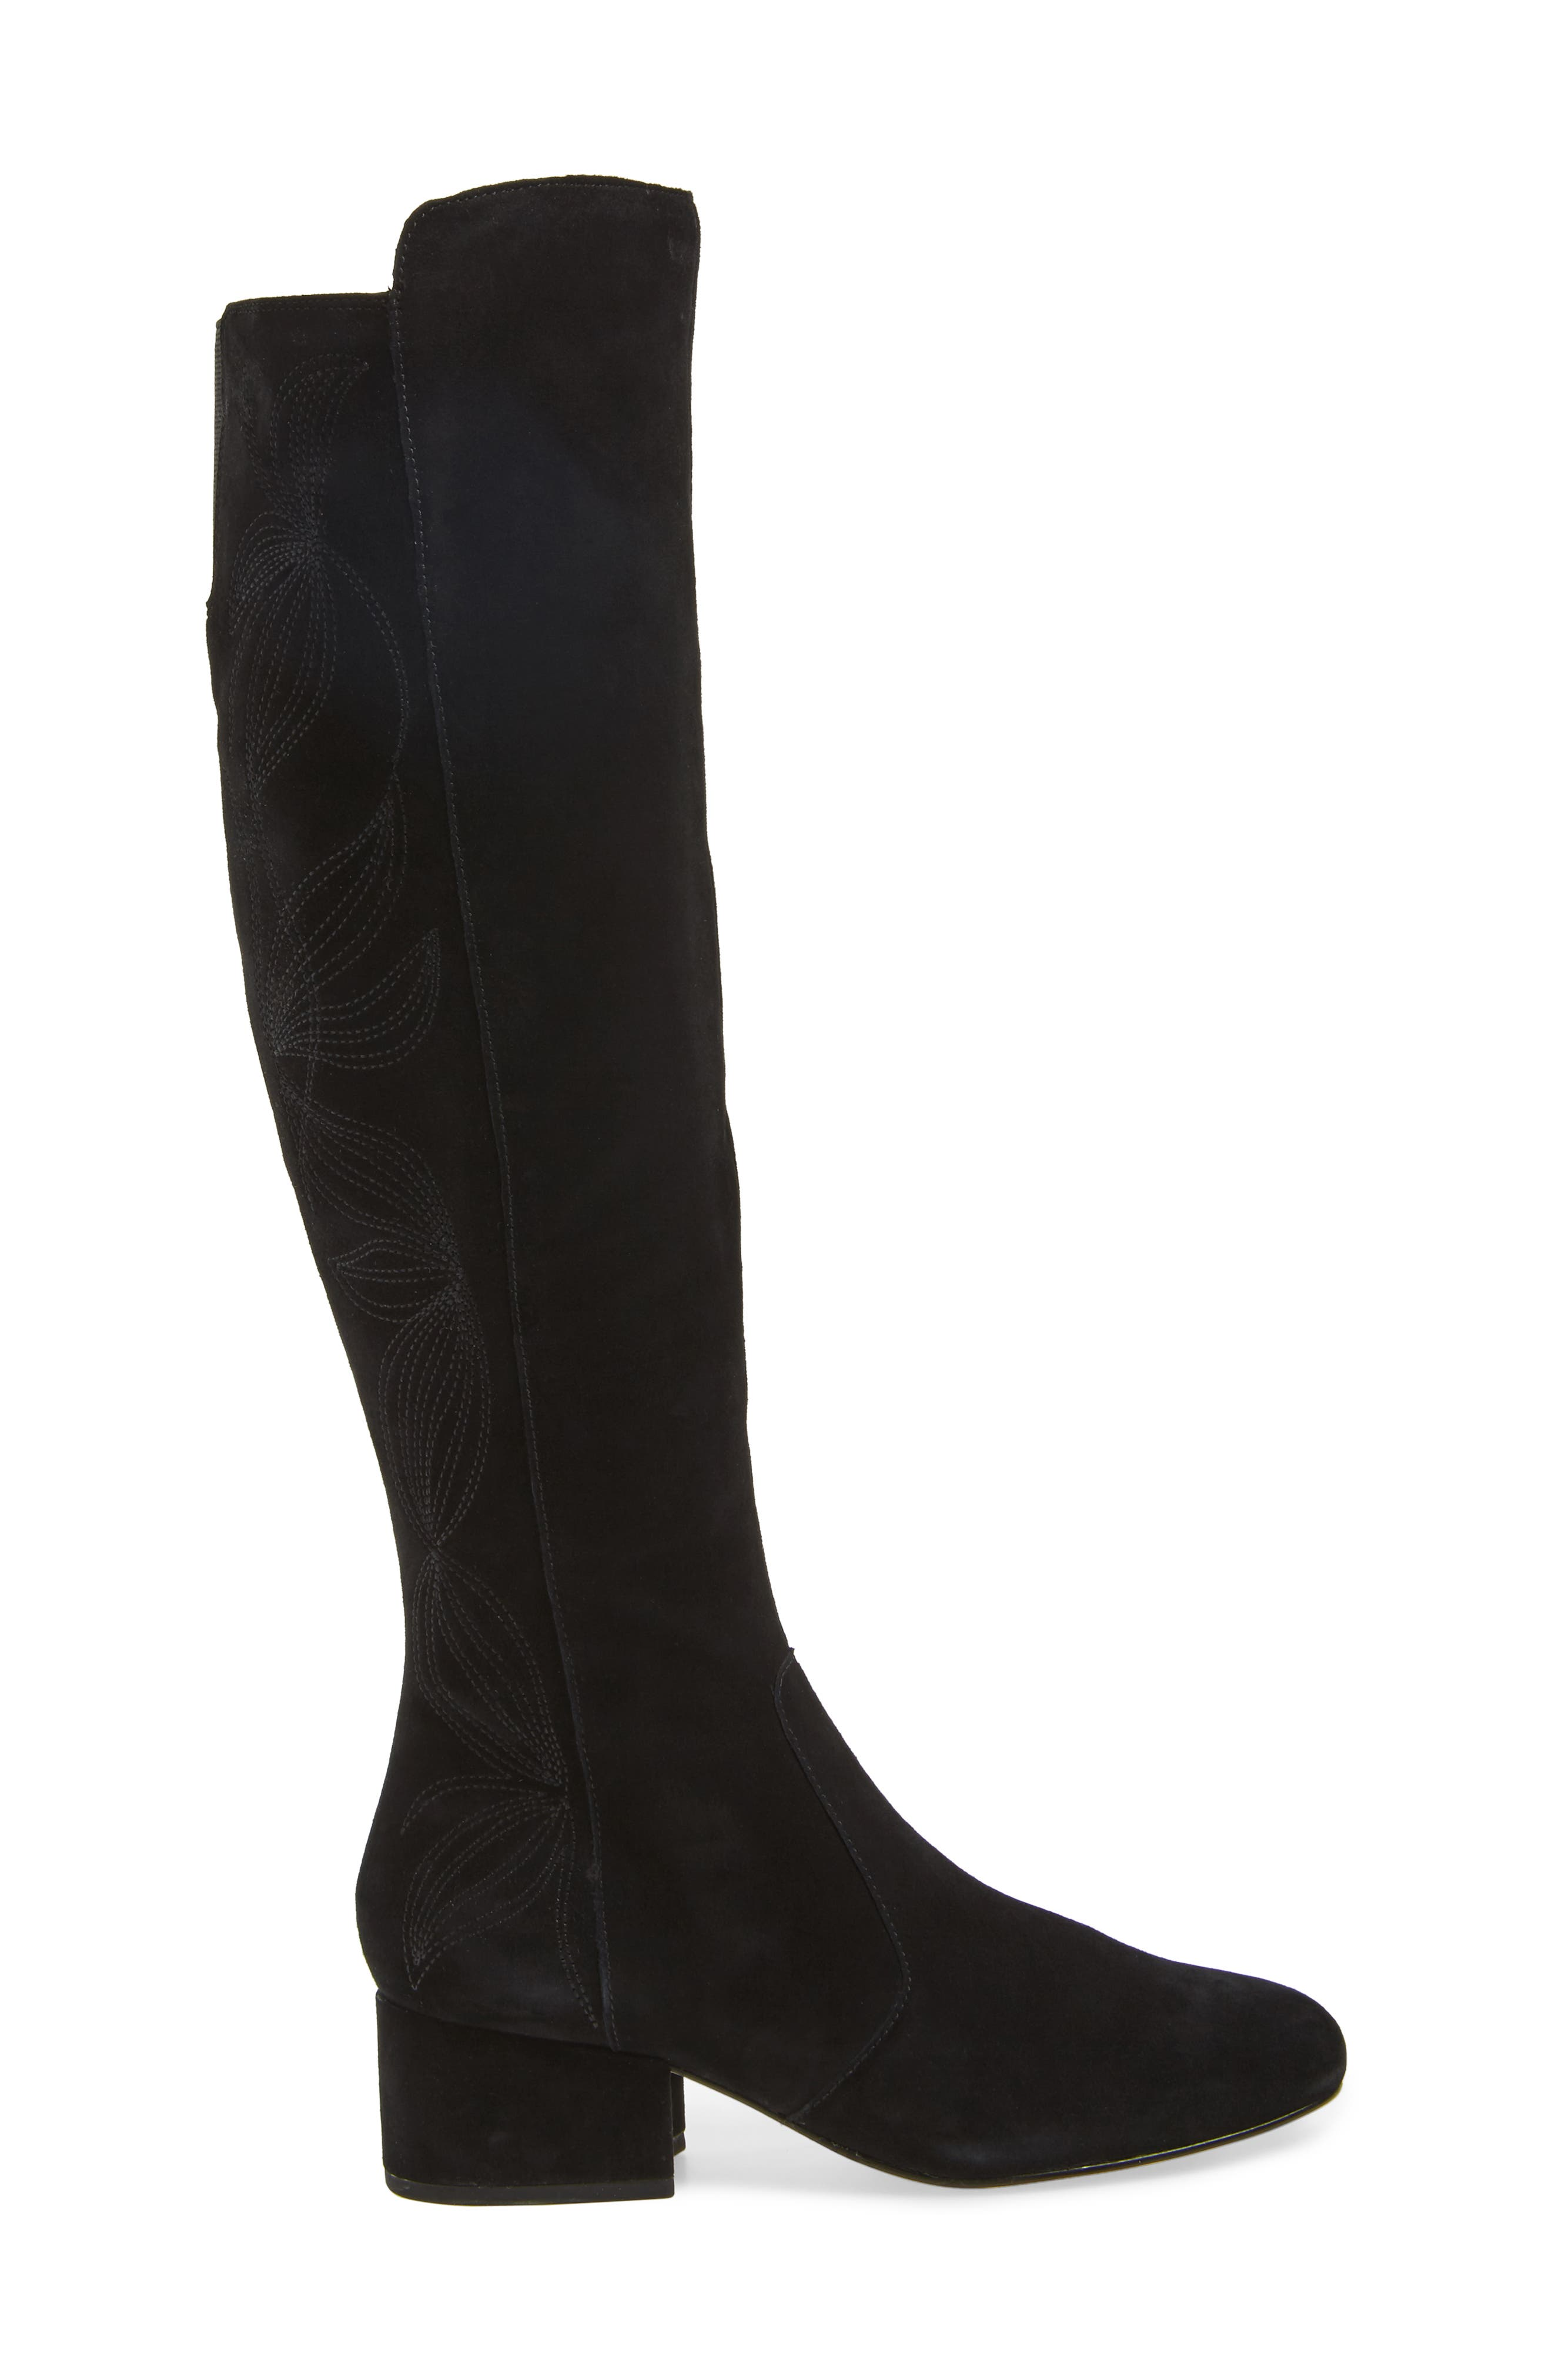 Tawnna Knee High Boot,                             Alternate thumbnail 3, color,                             001